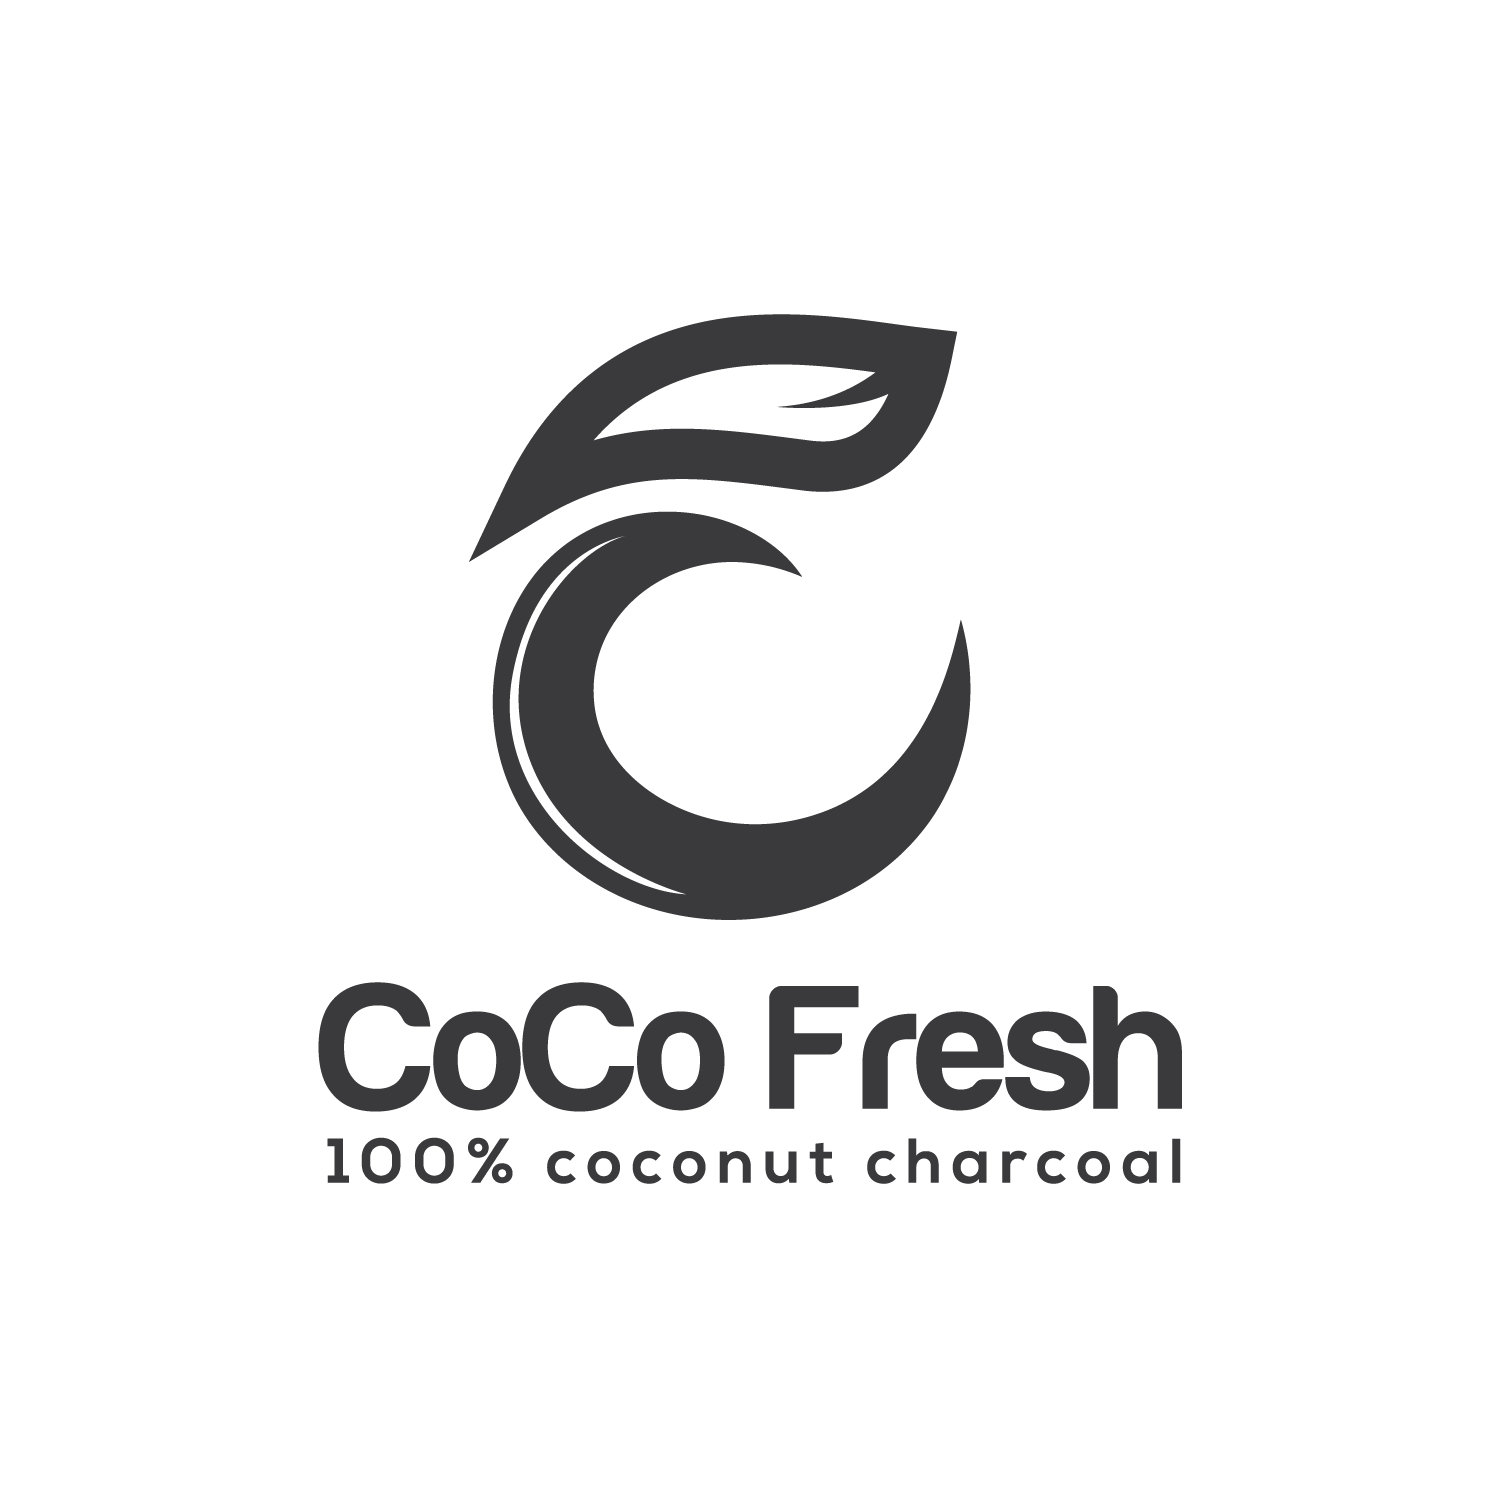 Elegant Personable Gym Logo Design For Coco Fresh Brand Name And